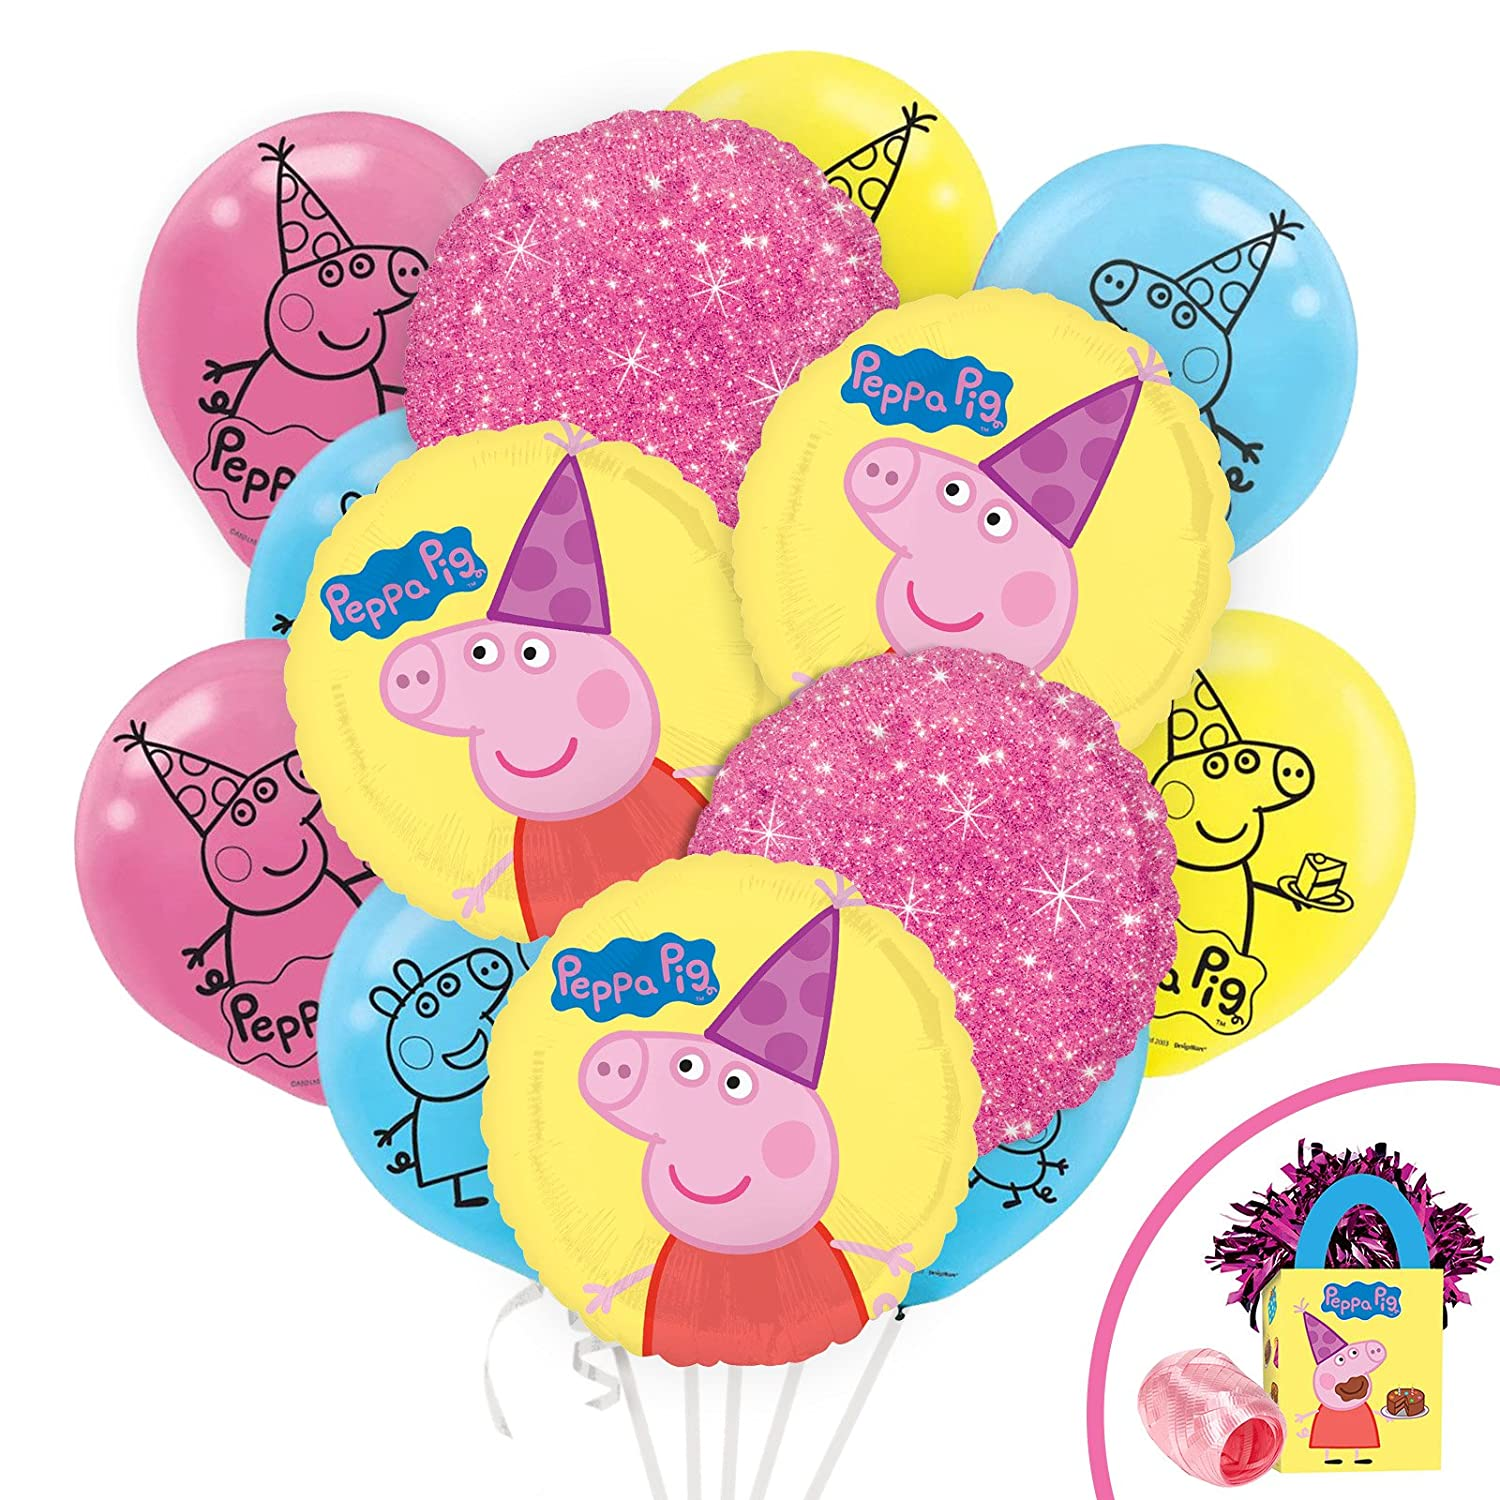 """Superhero Collection 12/"""" Assorted with Yellow Latex Balloons 5ct by Party Decor"""